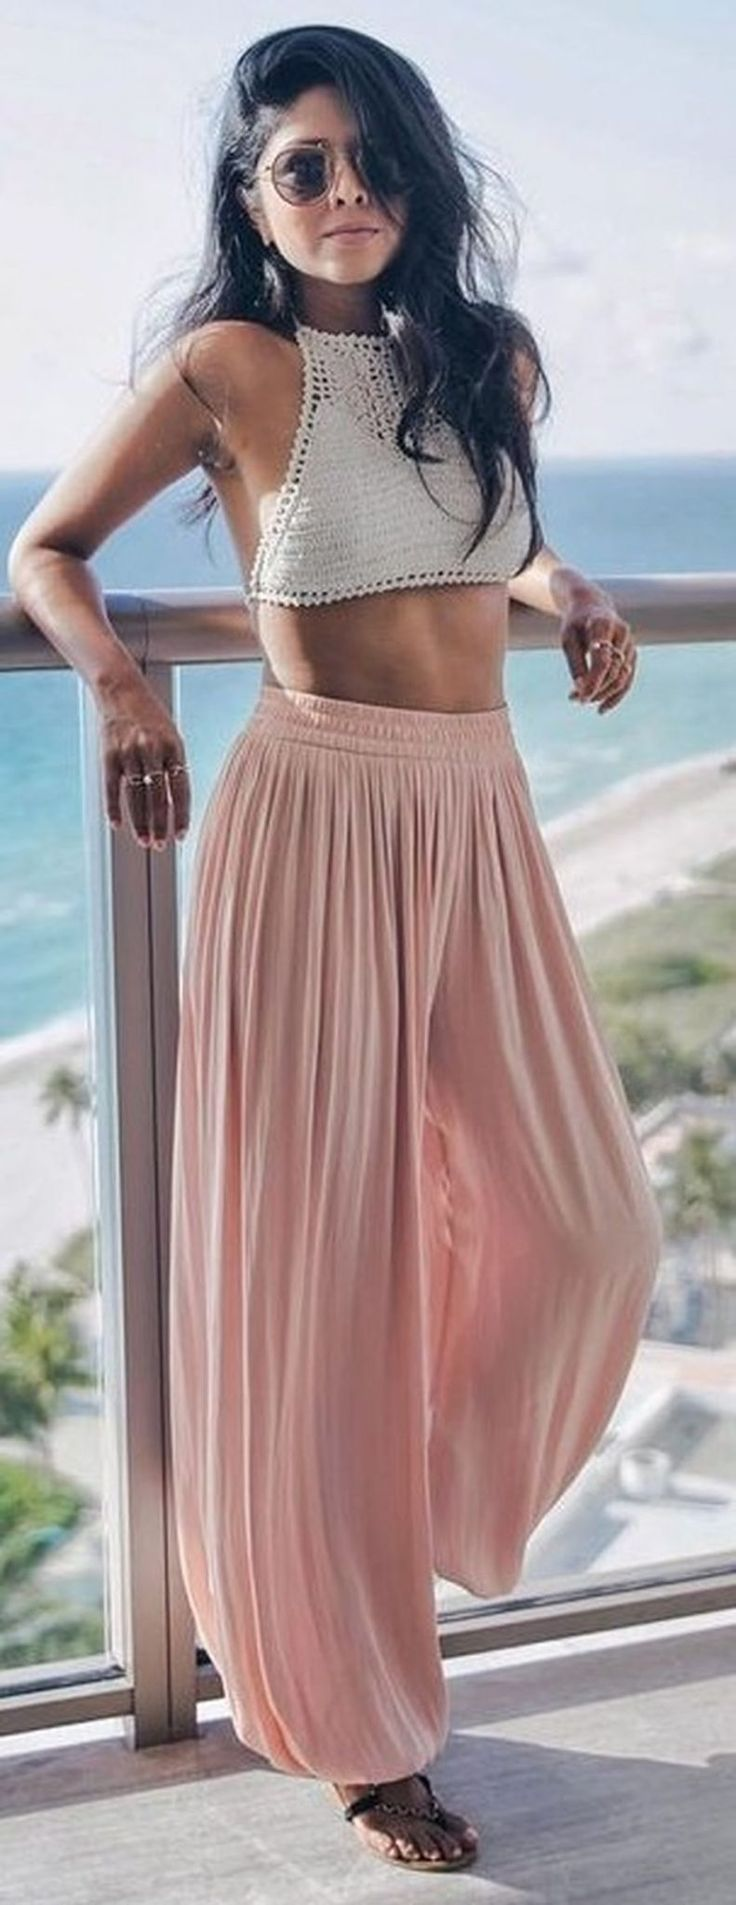 Summer Clothes For Teenage Girls: Best 25+ Casual Beach Outfit Ideas On Pinterest